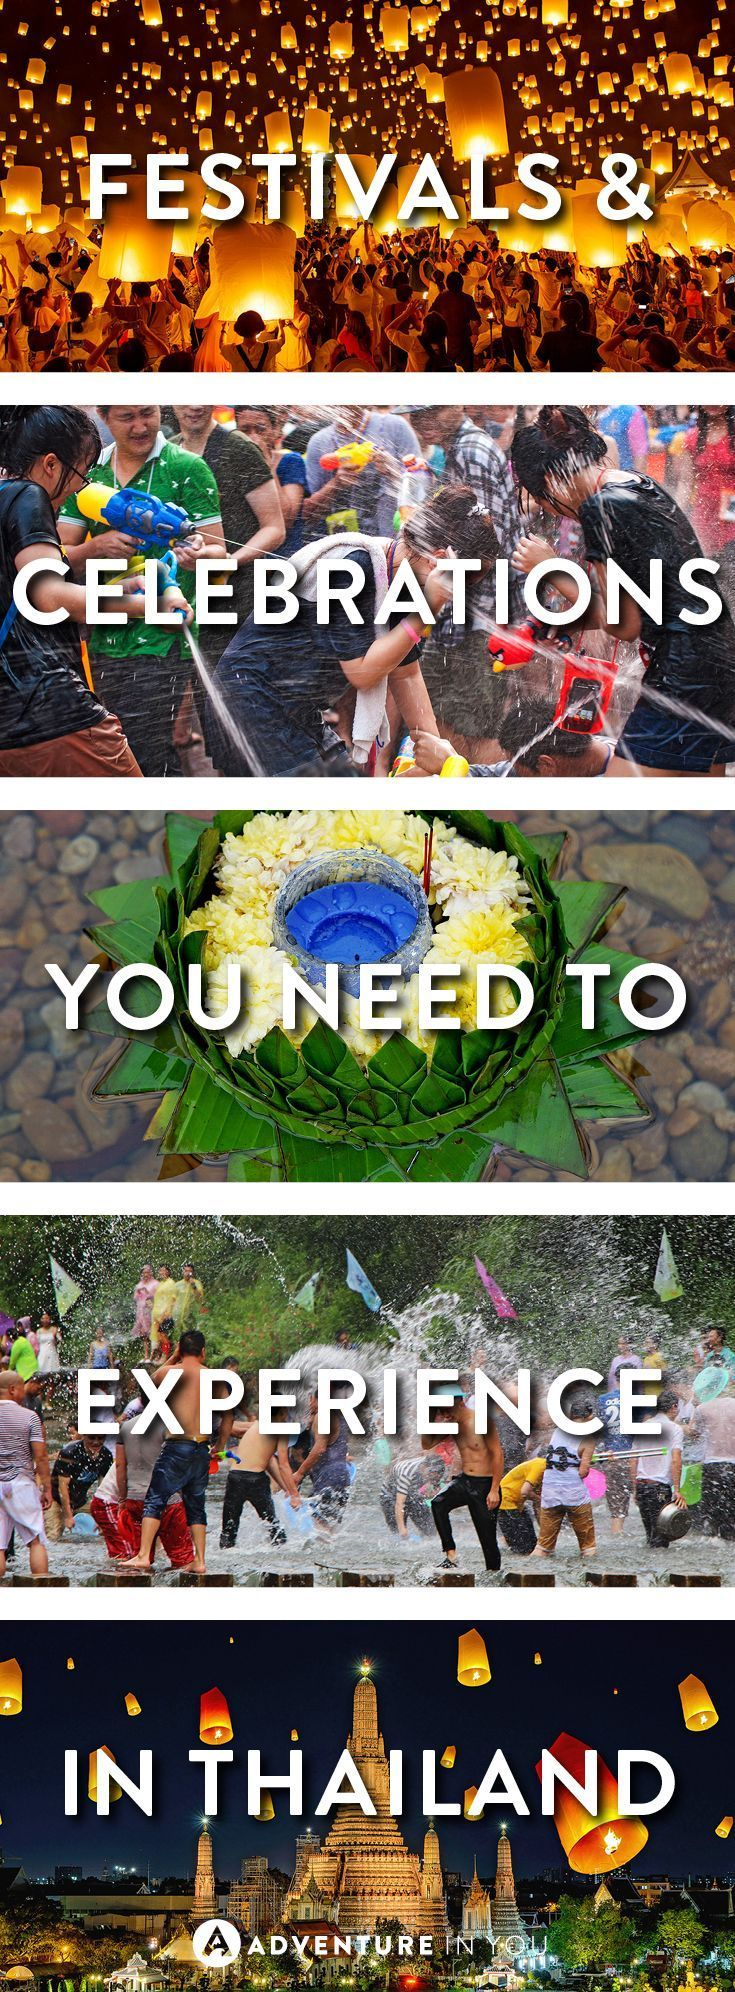 Thailand Travel | Ever wanted to visit Thailand for its celebrations and festivals? Here is a guide to the Loi Krathong light festival and the Songkran water festival.